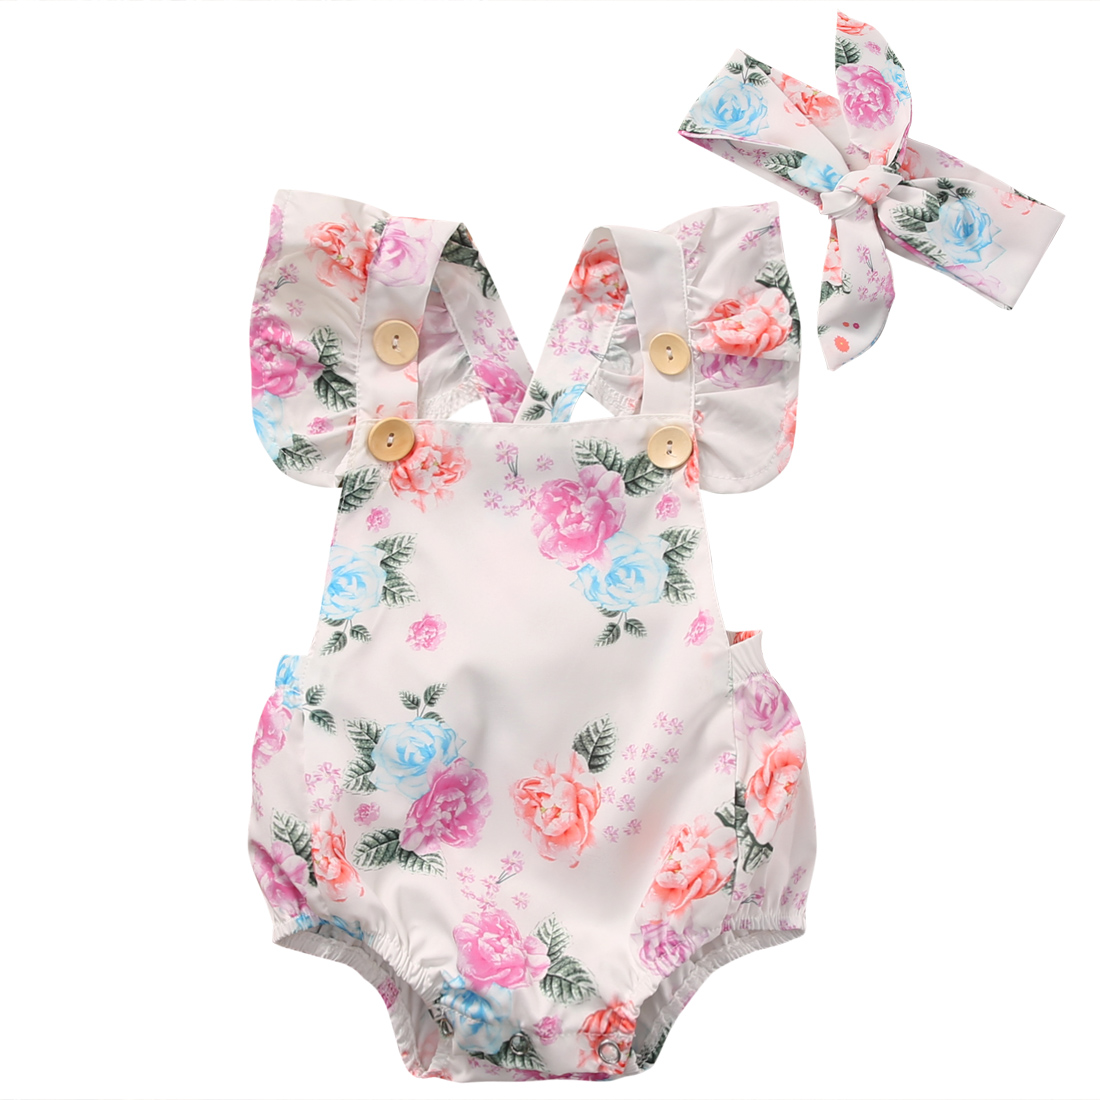 Floral Baby Romper Clothes Set 2017 Summer Newborn Baby Girl Ruffled Sleeve Bodysuit Jumpsuit ...